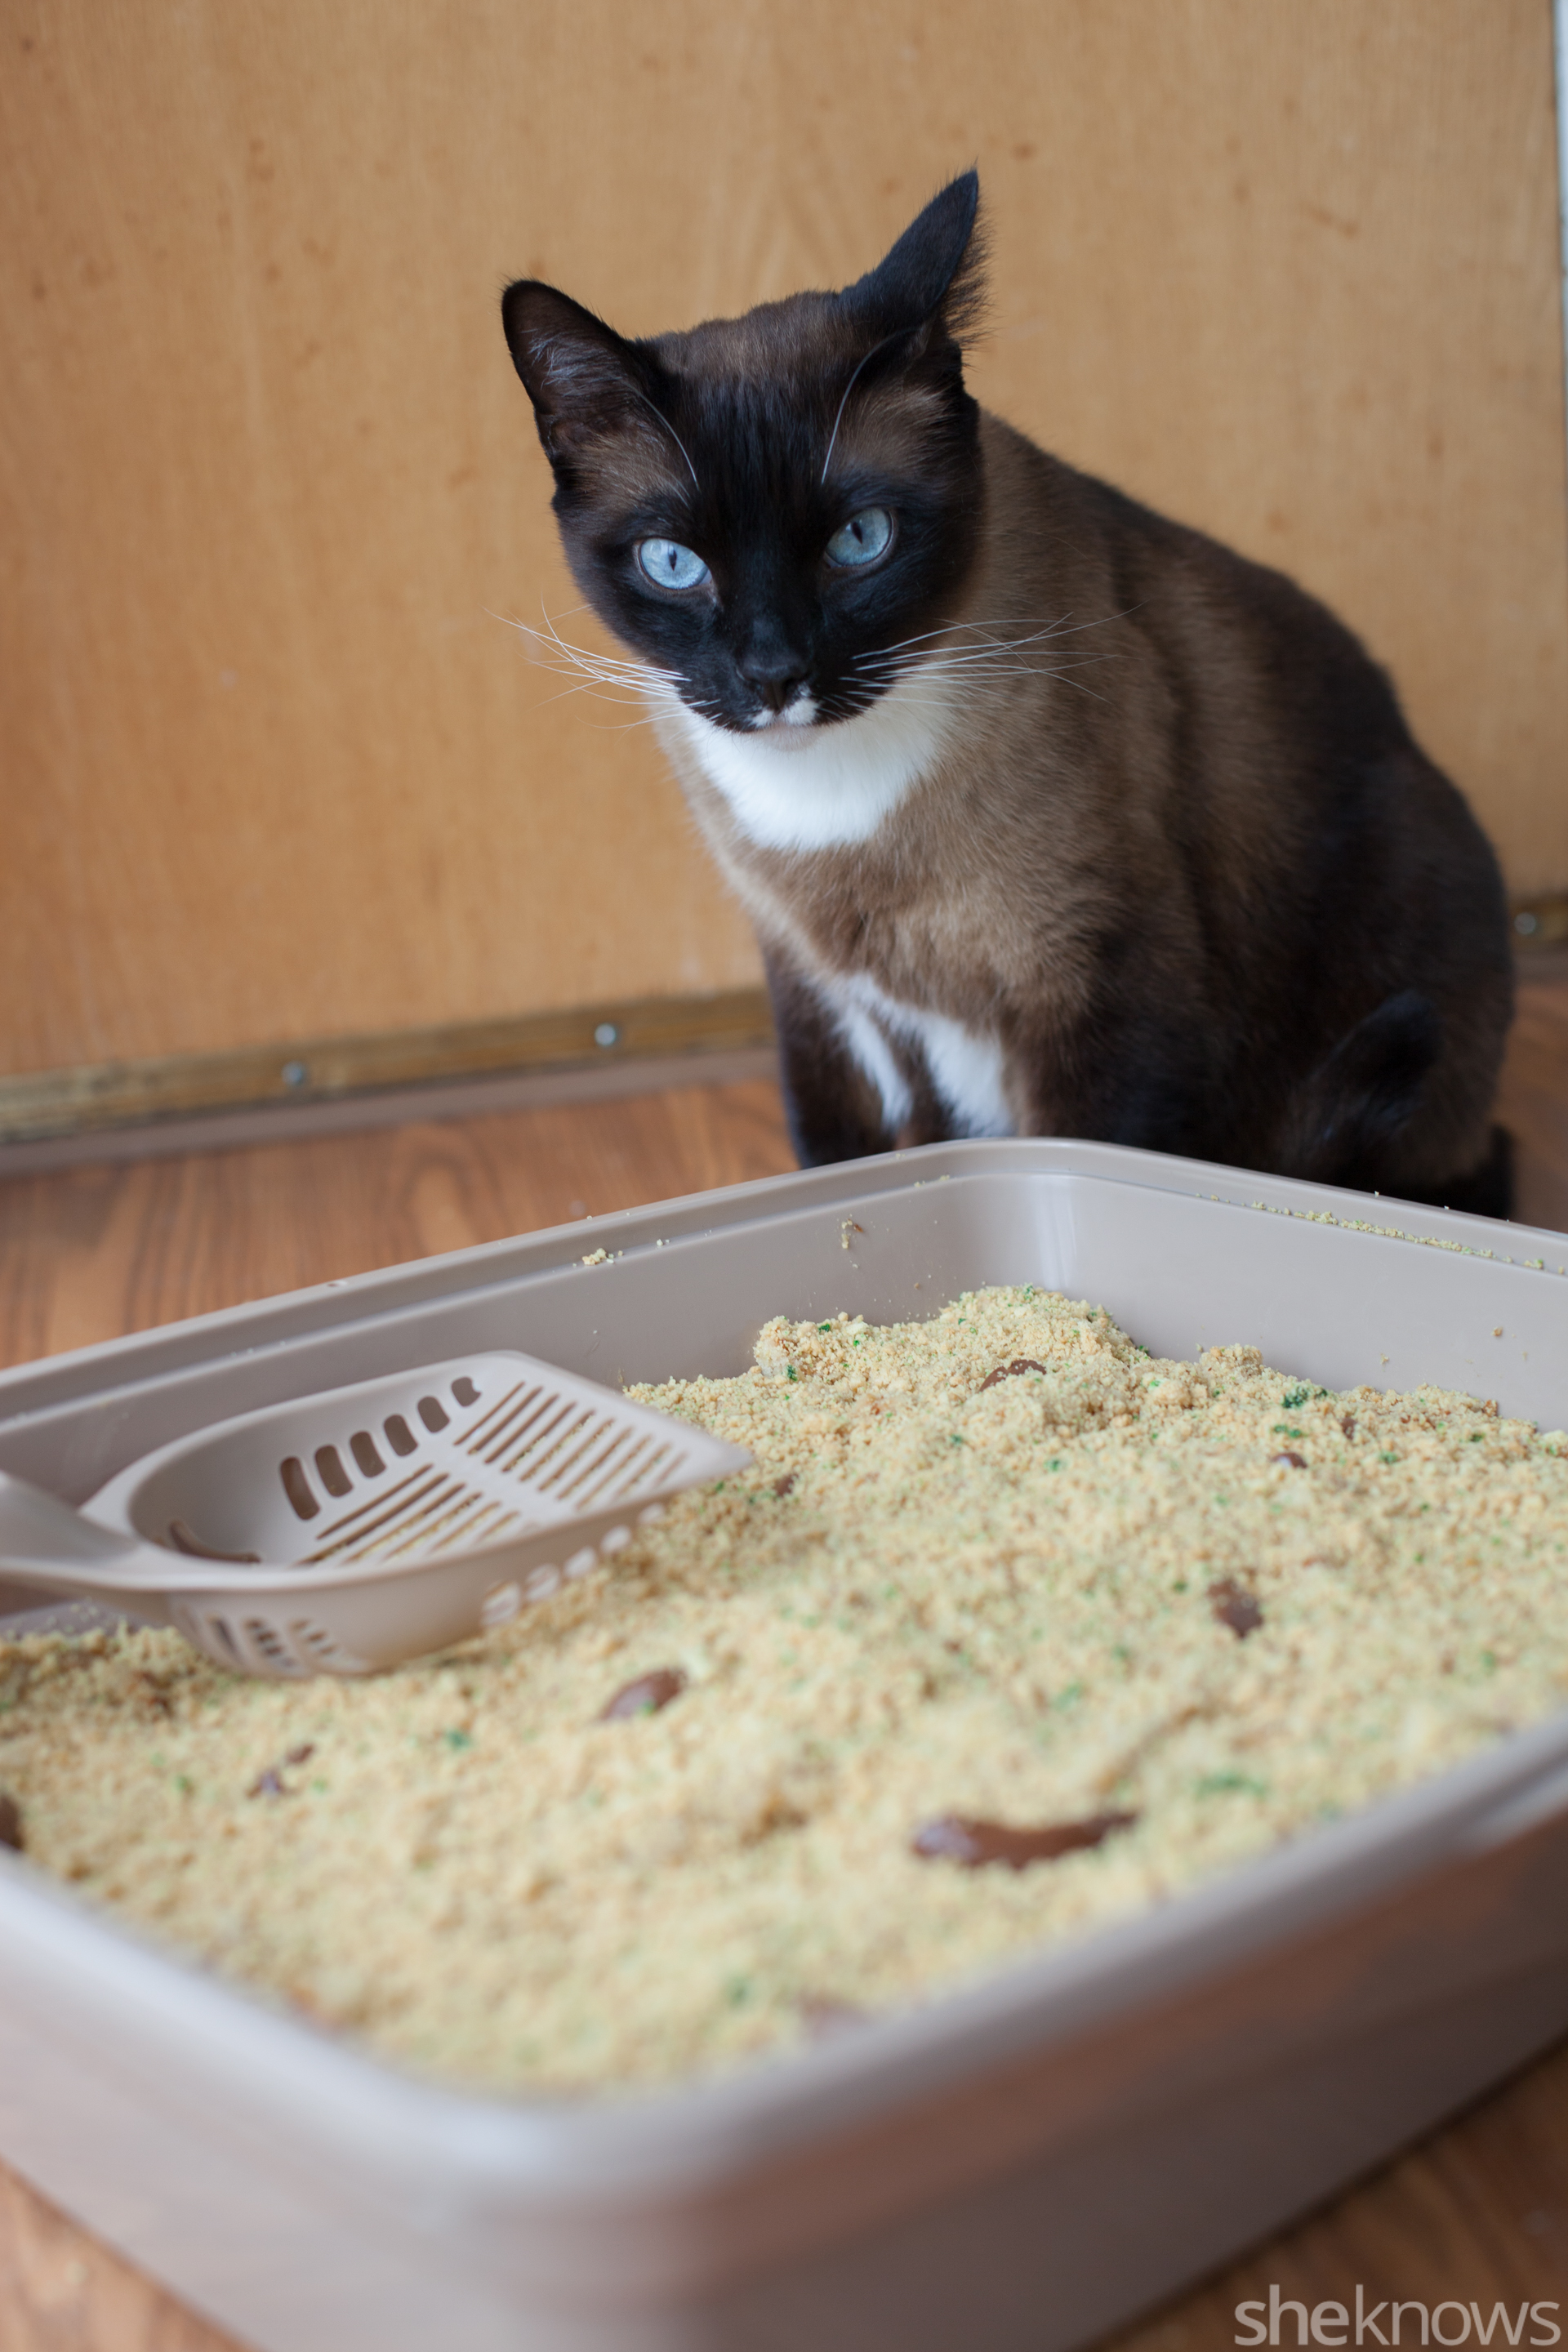 Kitty Litter Cake Is The April Fools Day Prank Your Kids